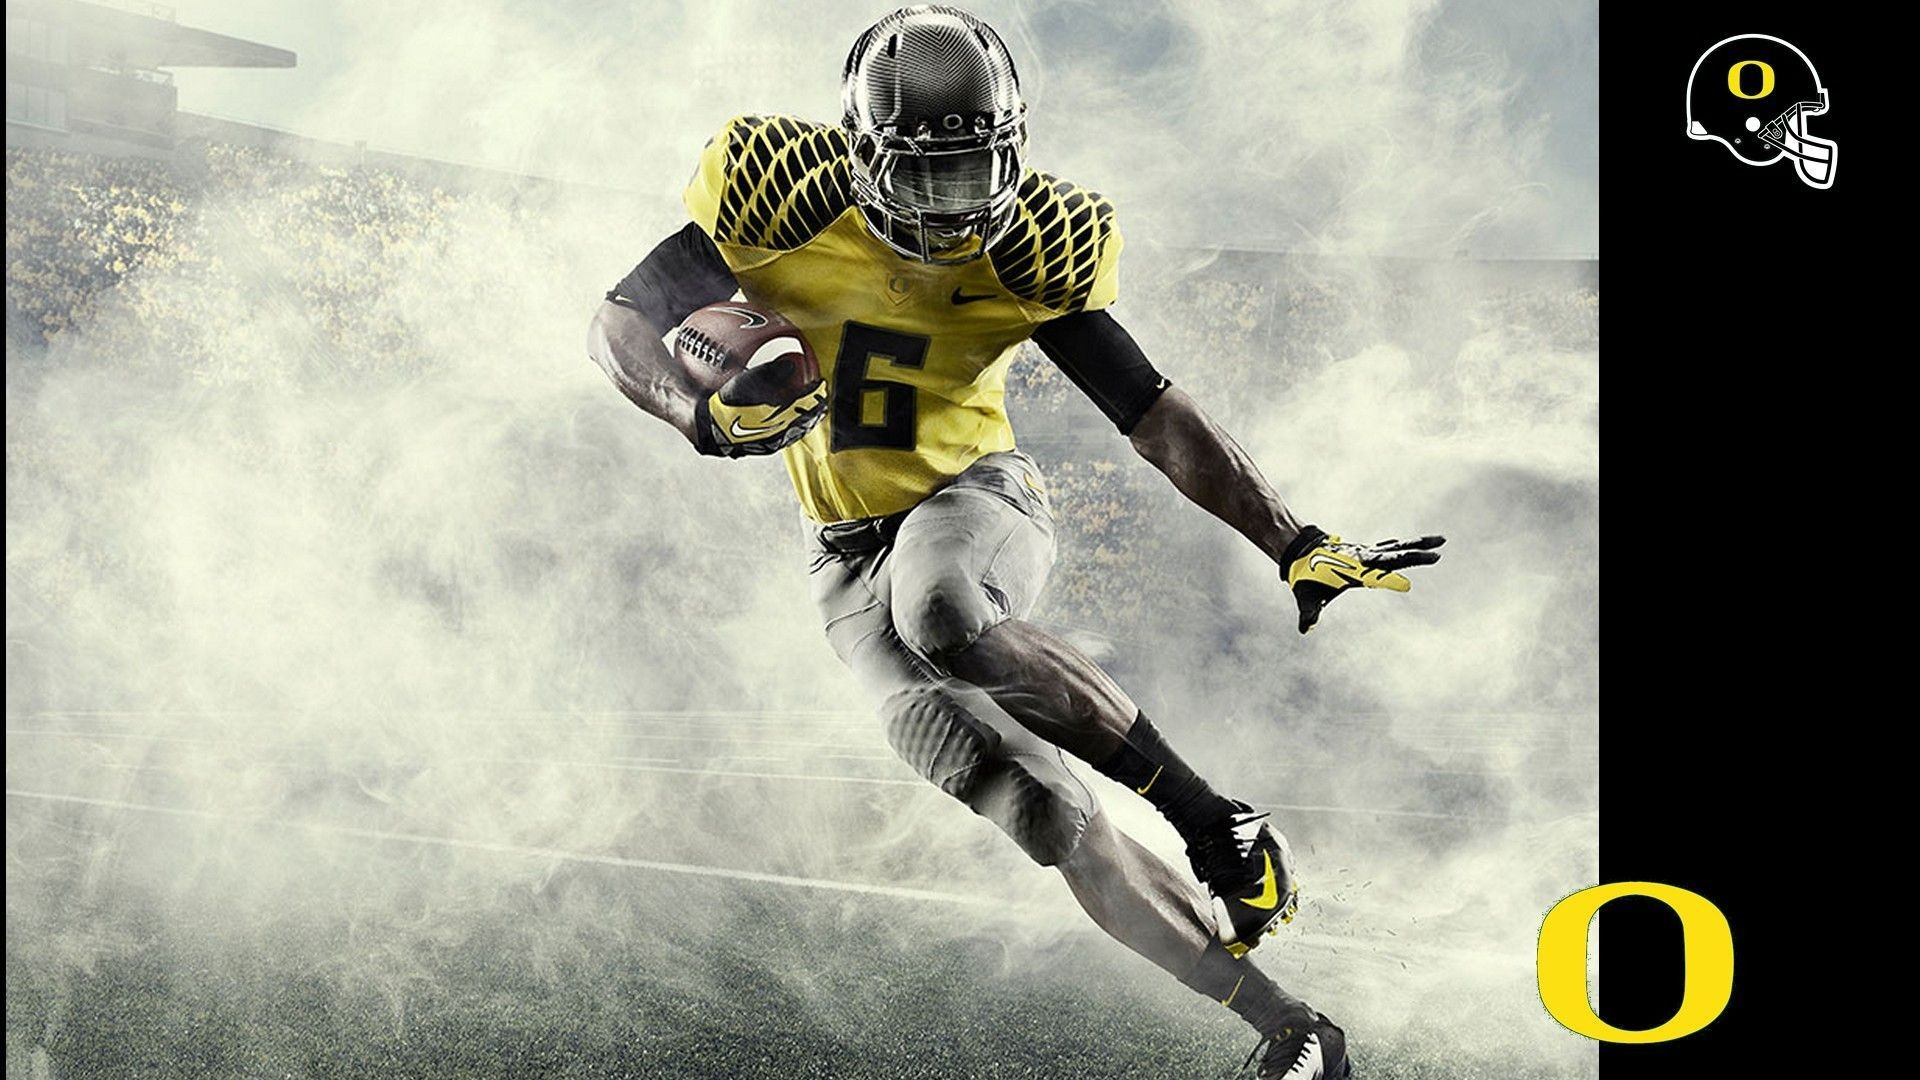 Collection of Football Wallpaper on HDWallpapers 1600×900 Football  Wallpapers (45 Wallpapers)  